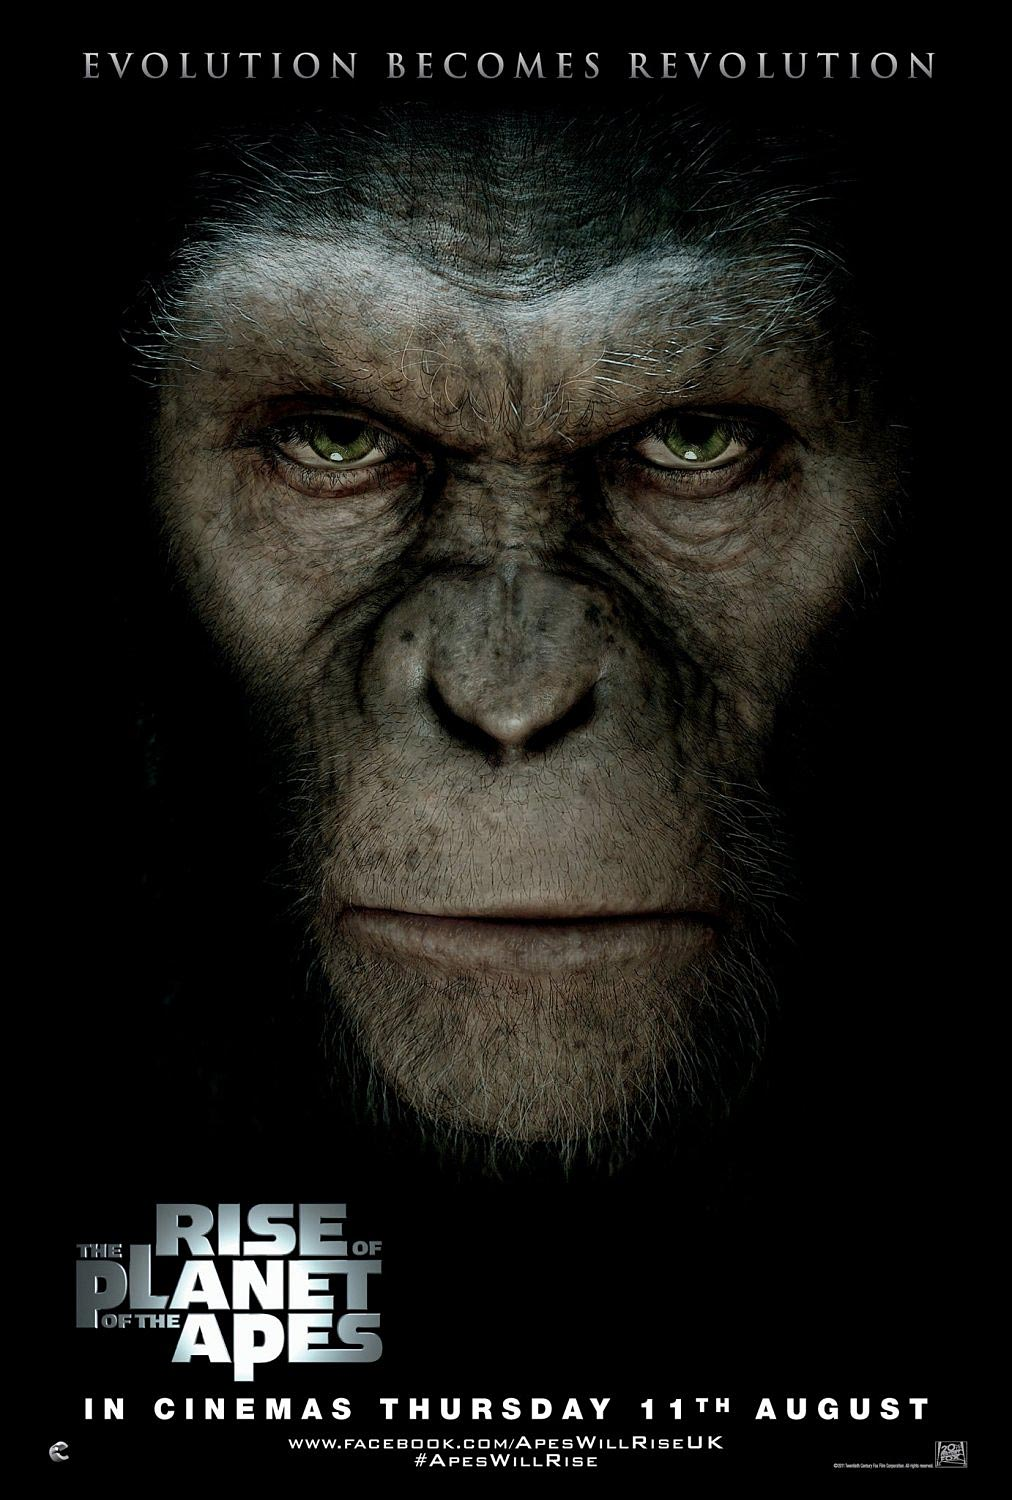 Rise of the Planet of the Apes – Caesar vs. Draco Malfoy ...